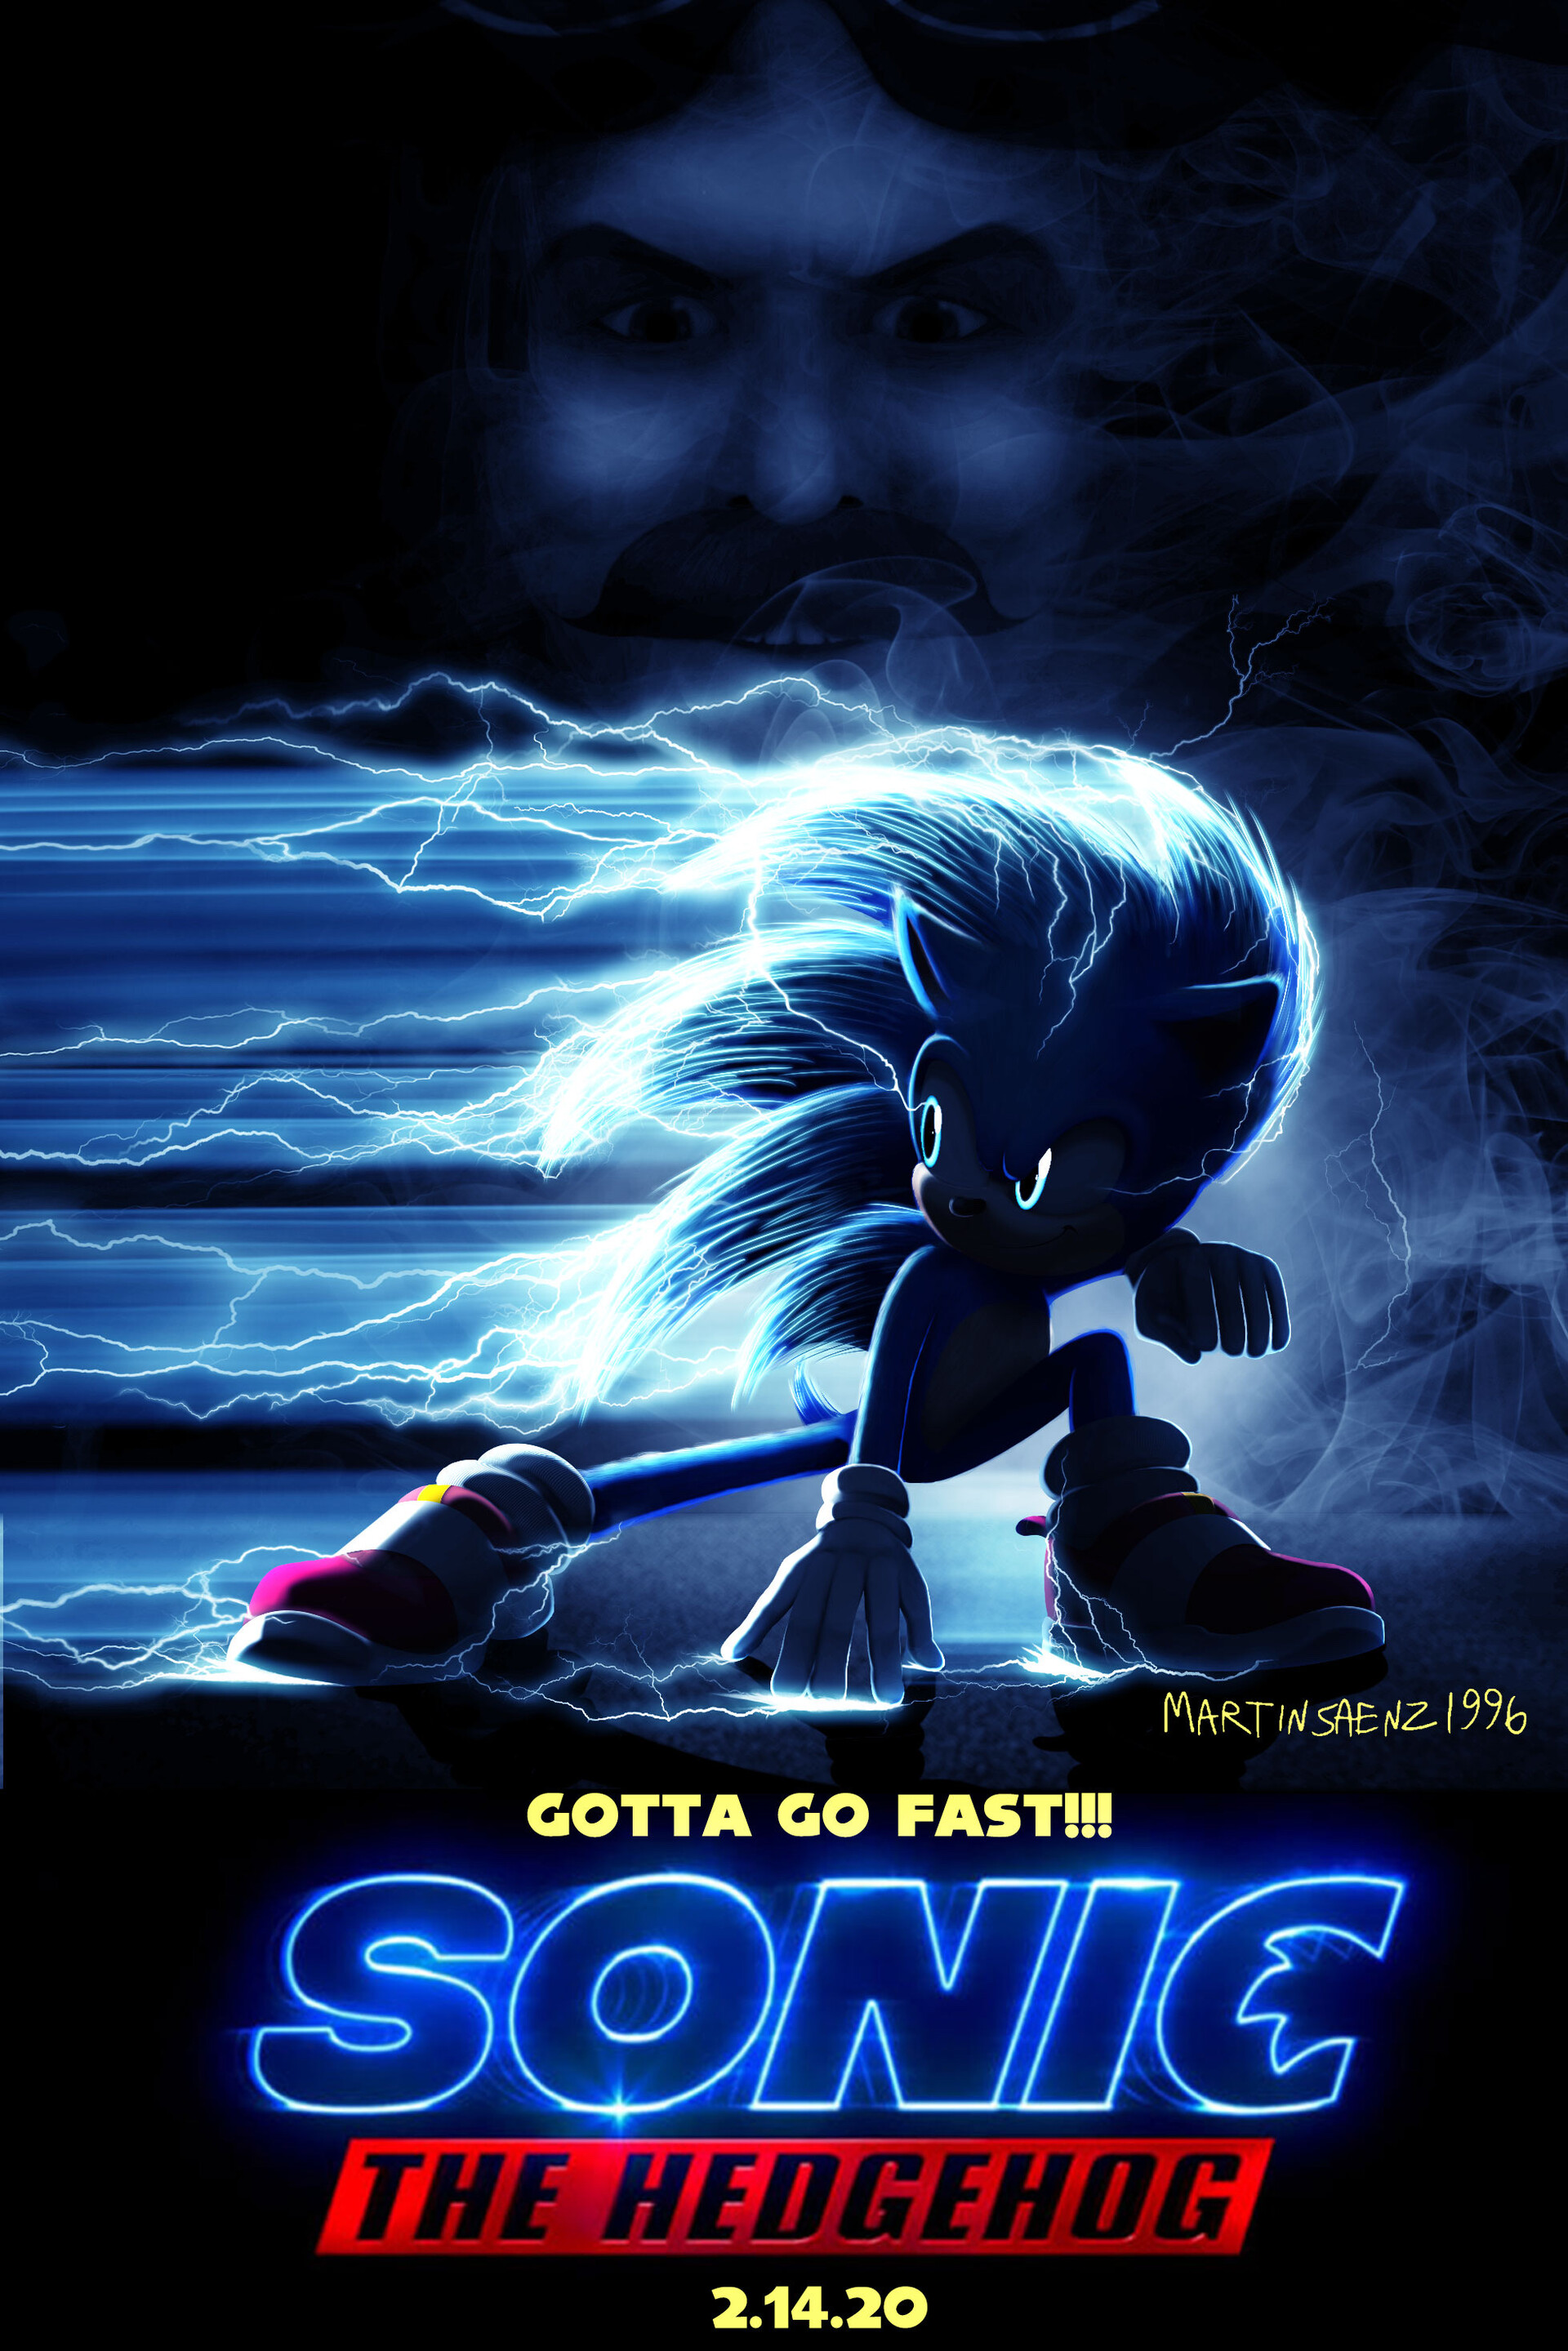 Artstation Sonic The Hedgehog Movie Poster Mockup Martin Saenz